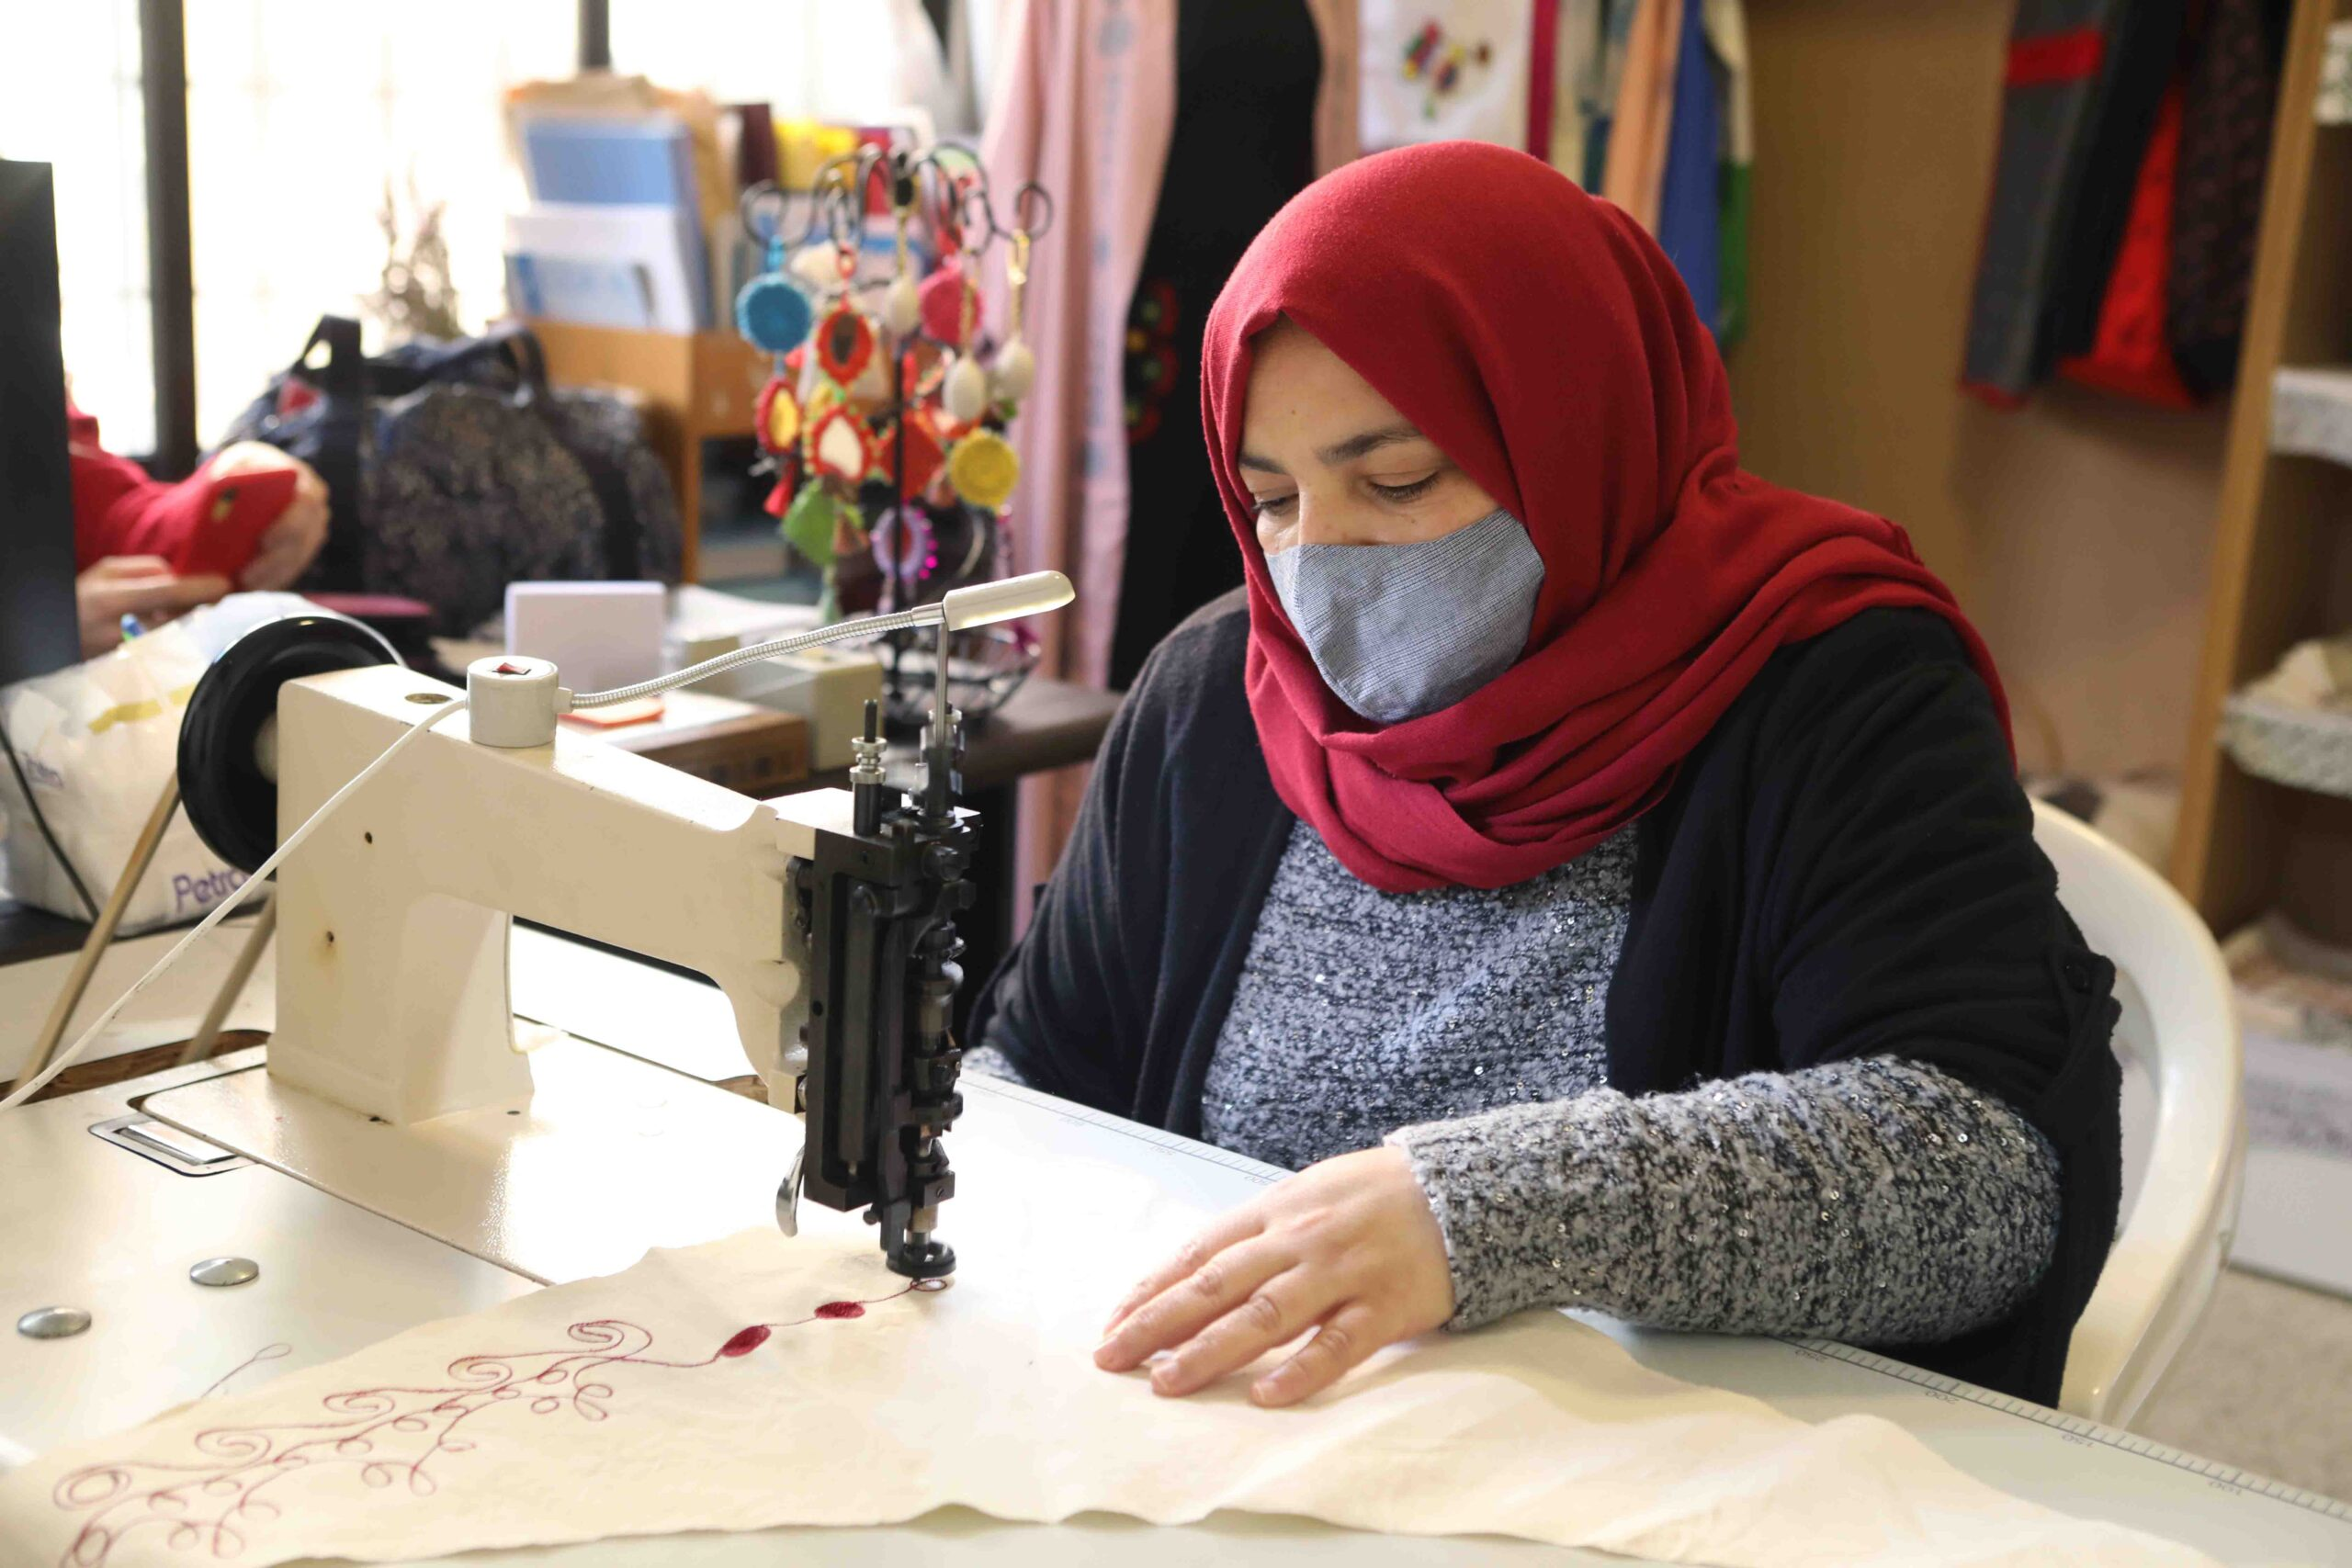 A woman in a face mask uses a sewing machine